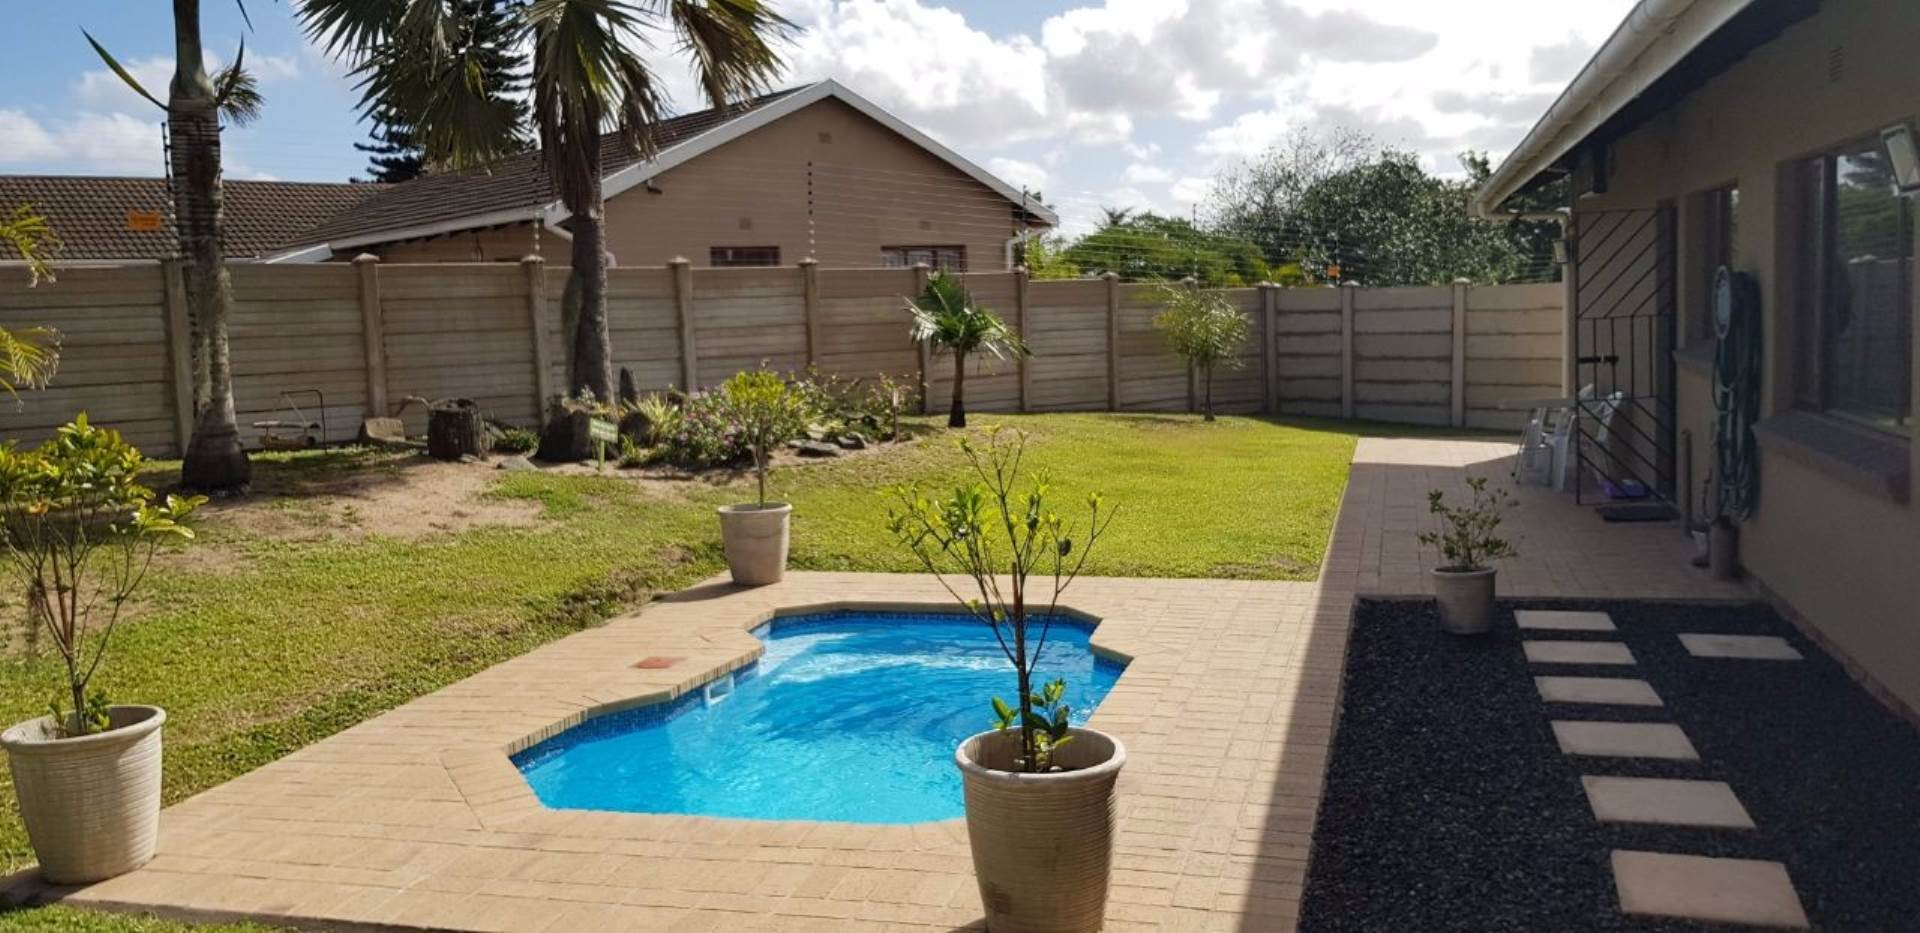 3 BedroomHouse For Sale In Wildenwide